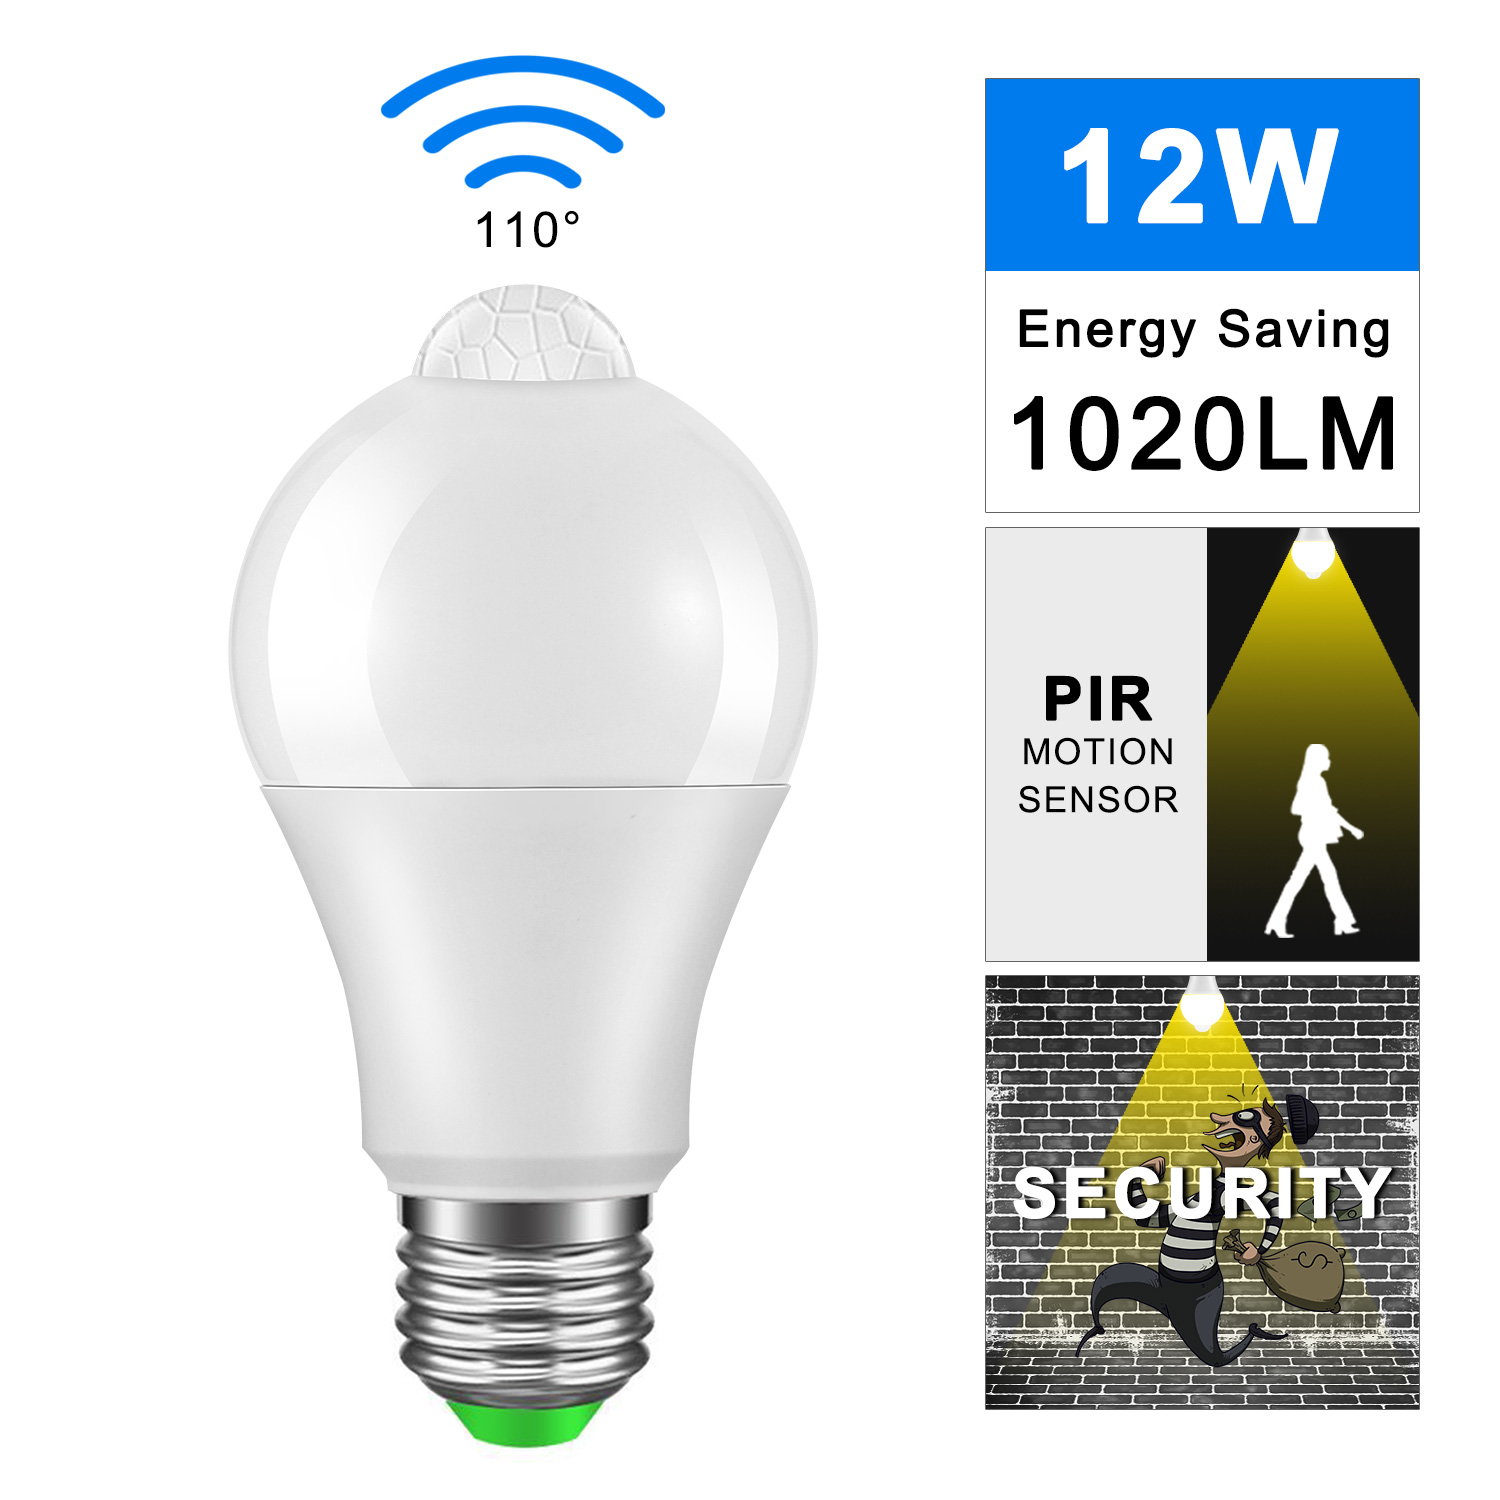 LED PIR Motion Sensor Lamp 12w AC 85 265V Led Bulb 18w Auto Smart Led PIR Infrared Body Sound + Light E27 Motion Sensor Light-in LED Bulbs & Tubes from Lights & Lighting on Aliexpress.com | Alibaba Group